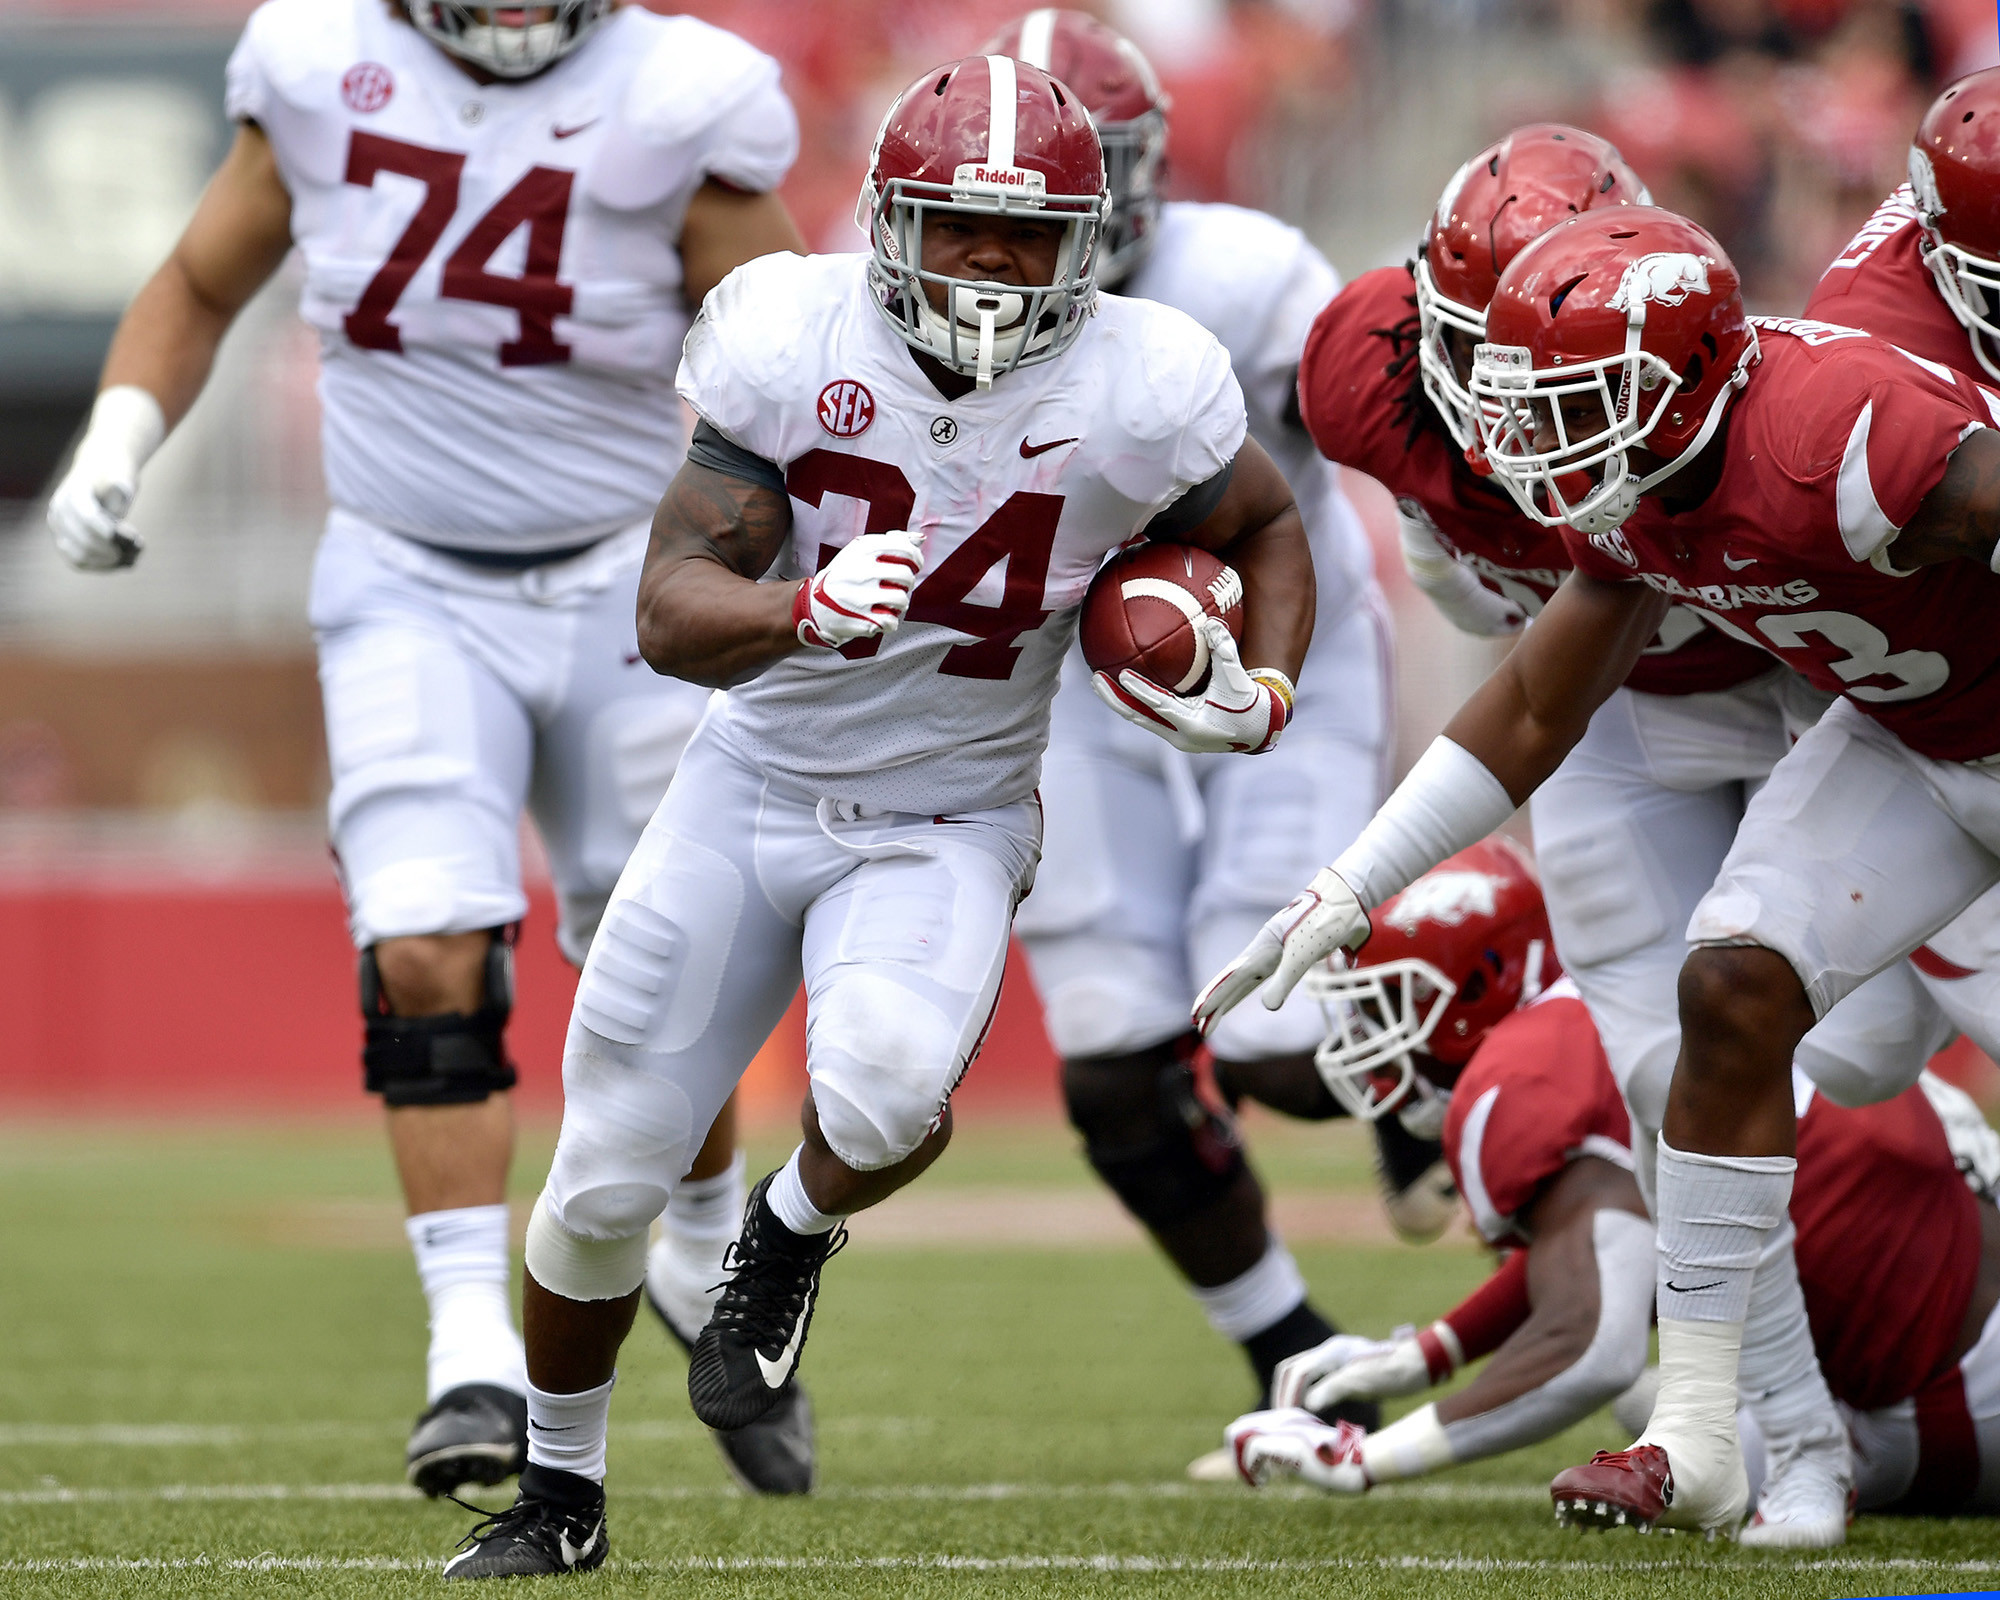 Alabama Crimson Tide running back Damien Harris (34) finds some running room in the second half of the NCAA football game against the Arkansas Razorbacks at Razorback Stadium on Oct. 6, 2018, in Fayetteville, Ark. Alabama defeated Arkansas 65-31. (Photo by Lee Walls)